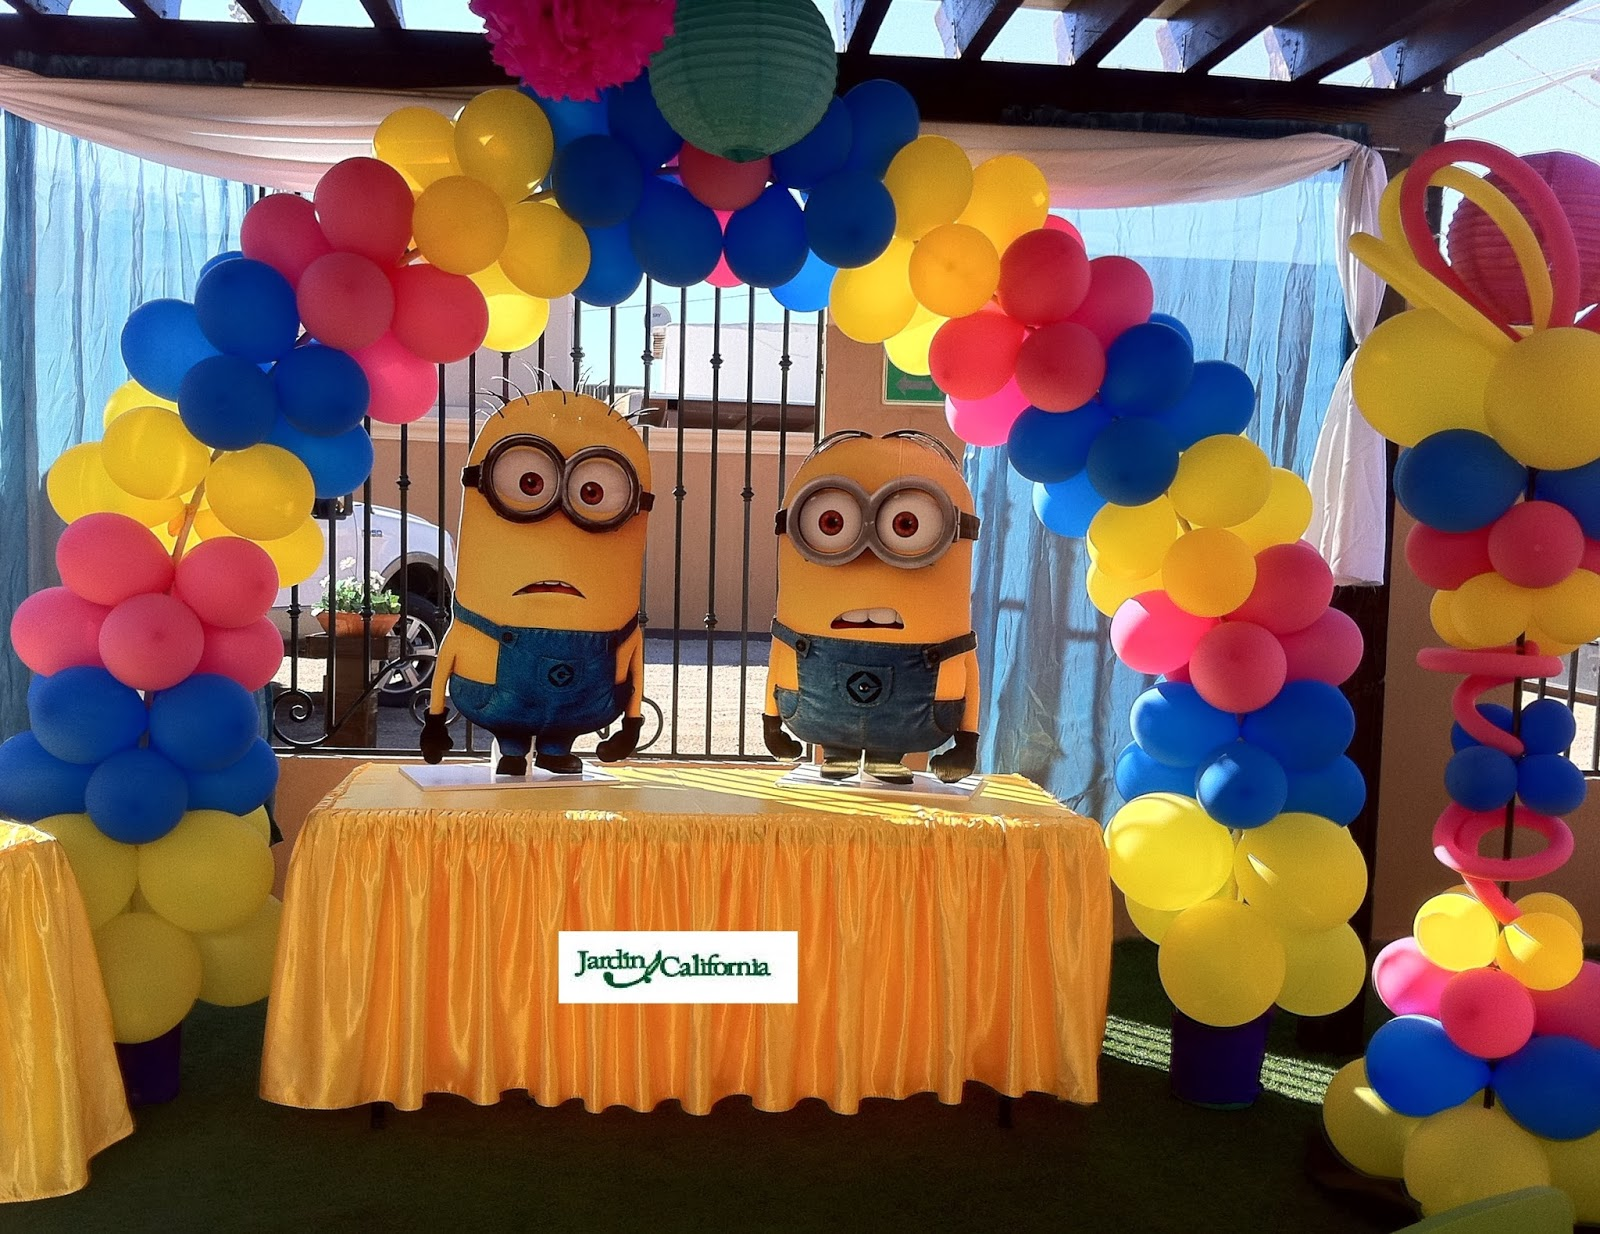 Minions Decoracion Para Fiestas ~ decoracion de frozen decoracion de minions Car Tuning